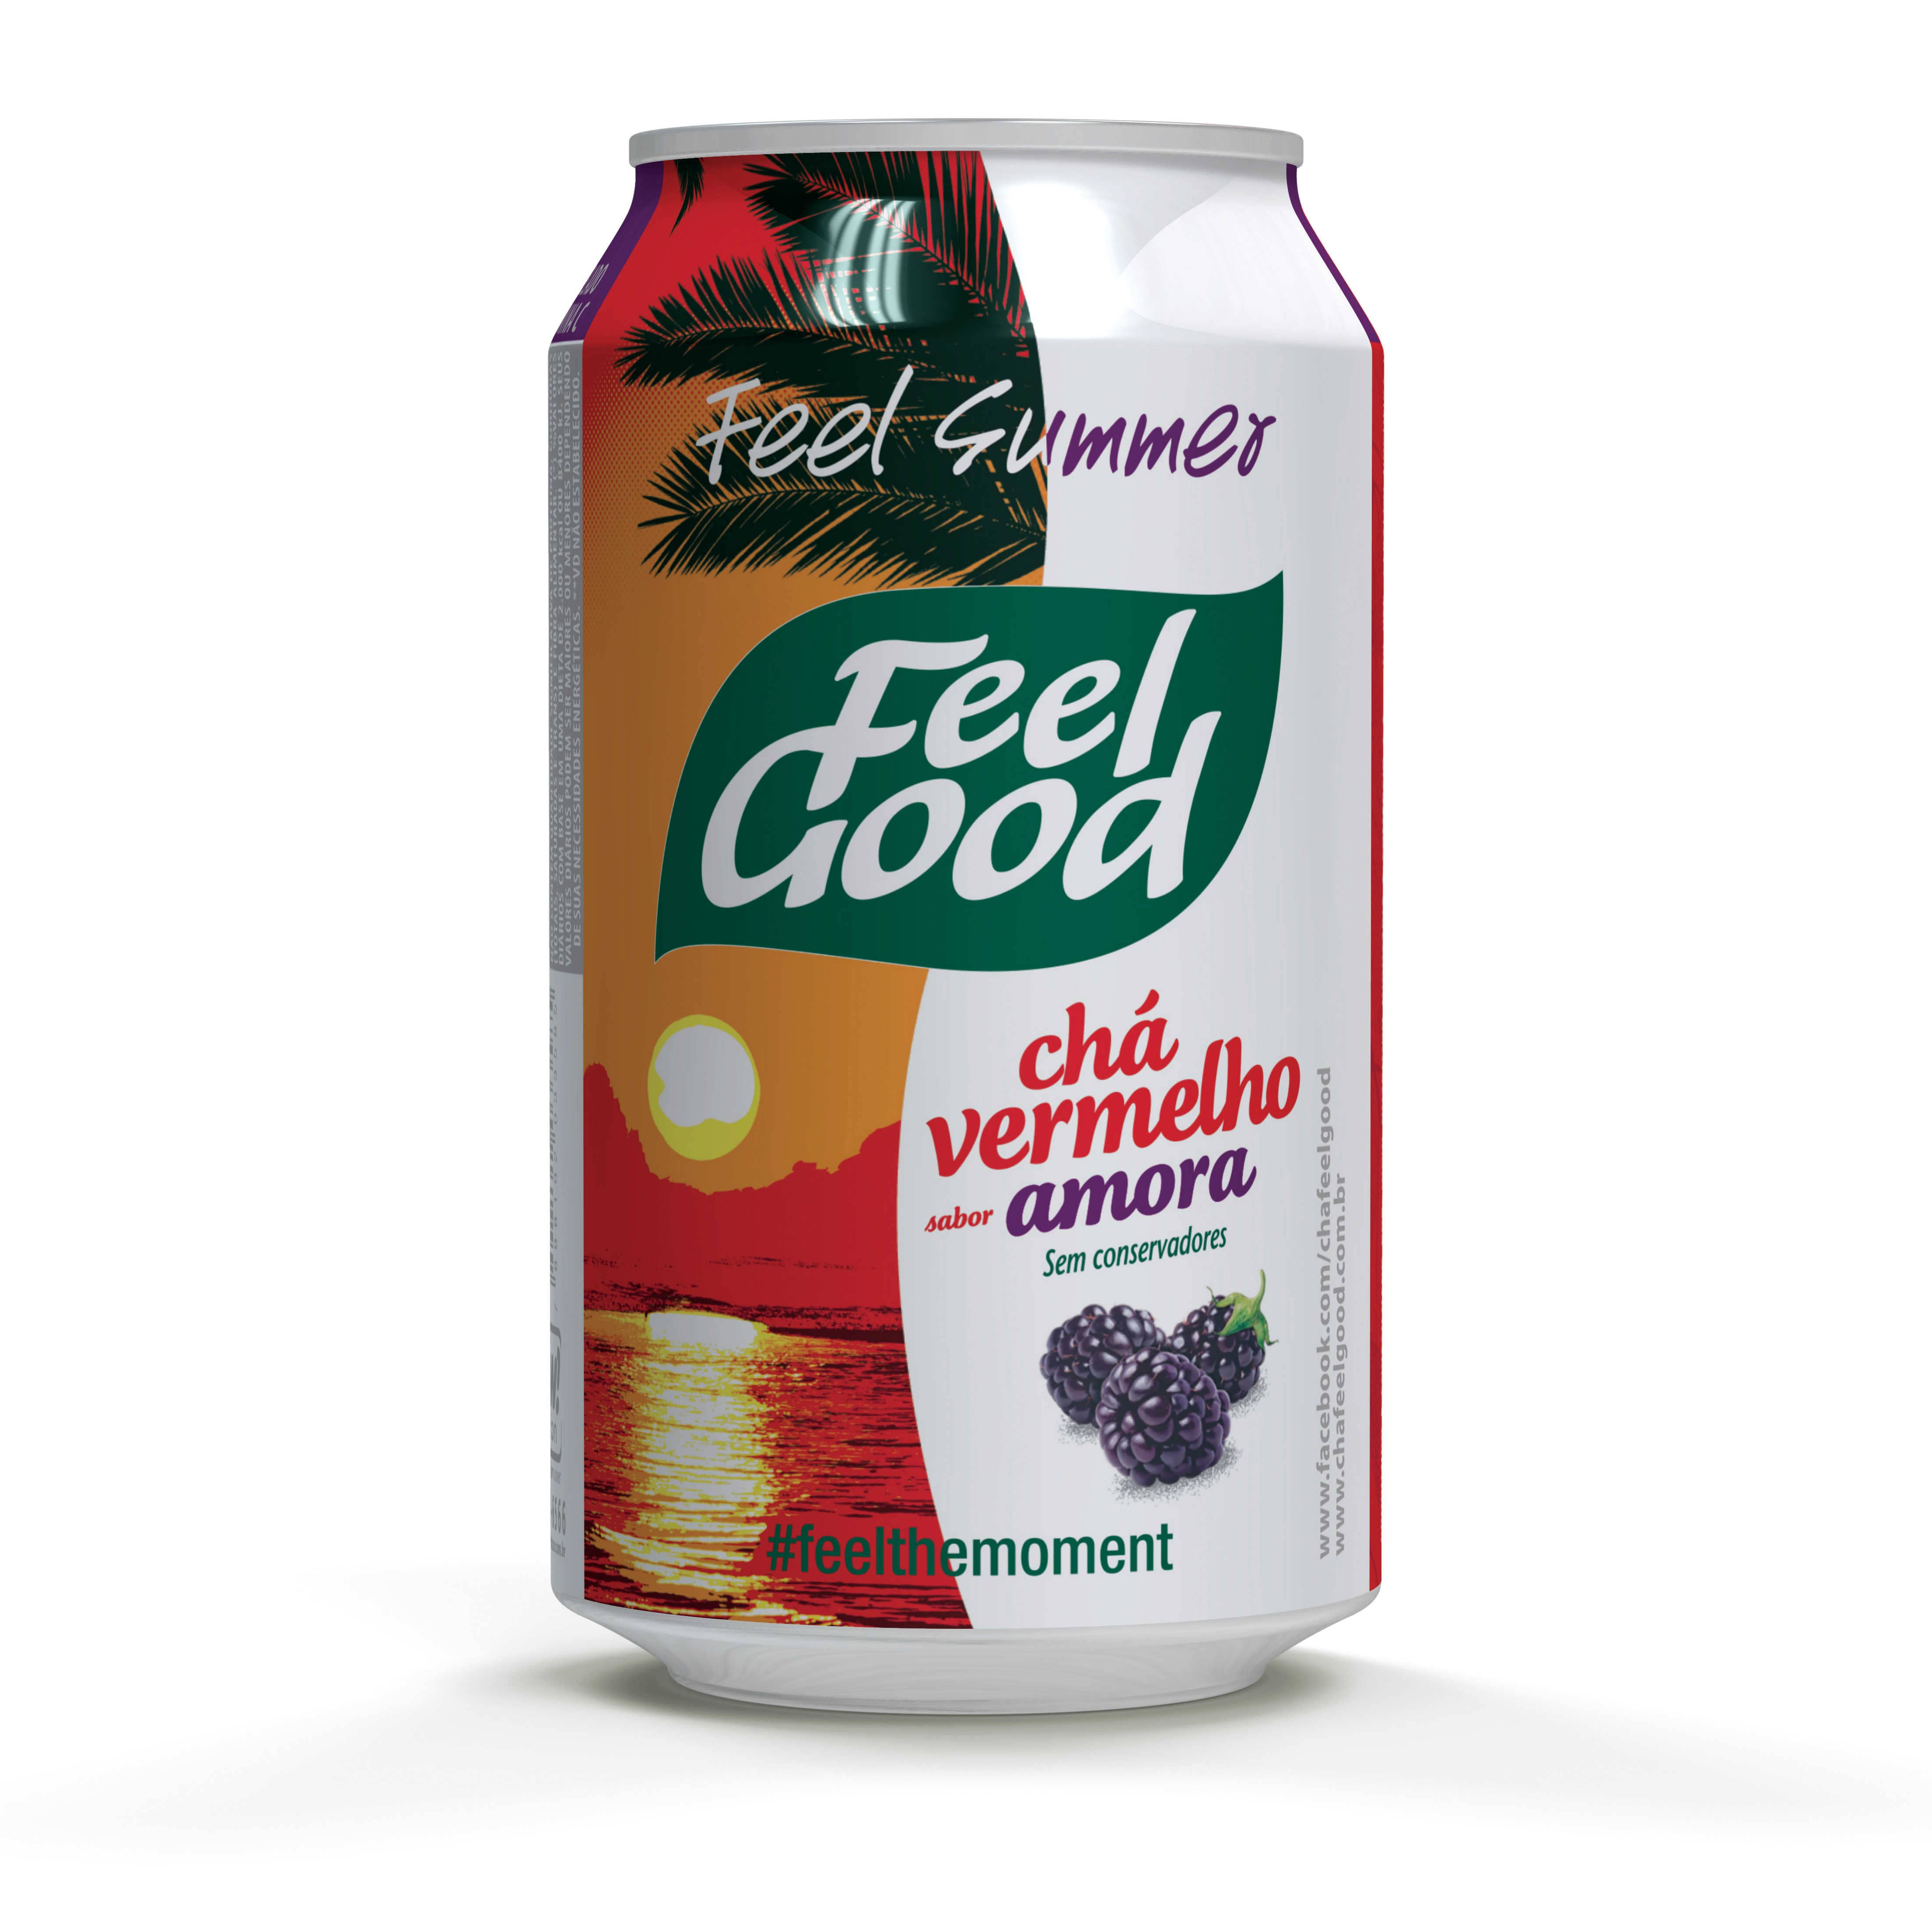 FeelGoodLata330ml_Amora300dpi